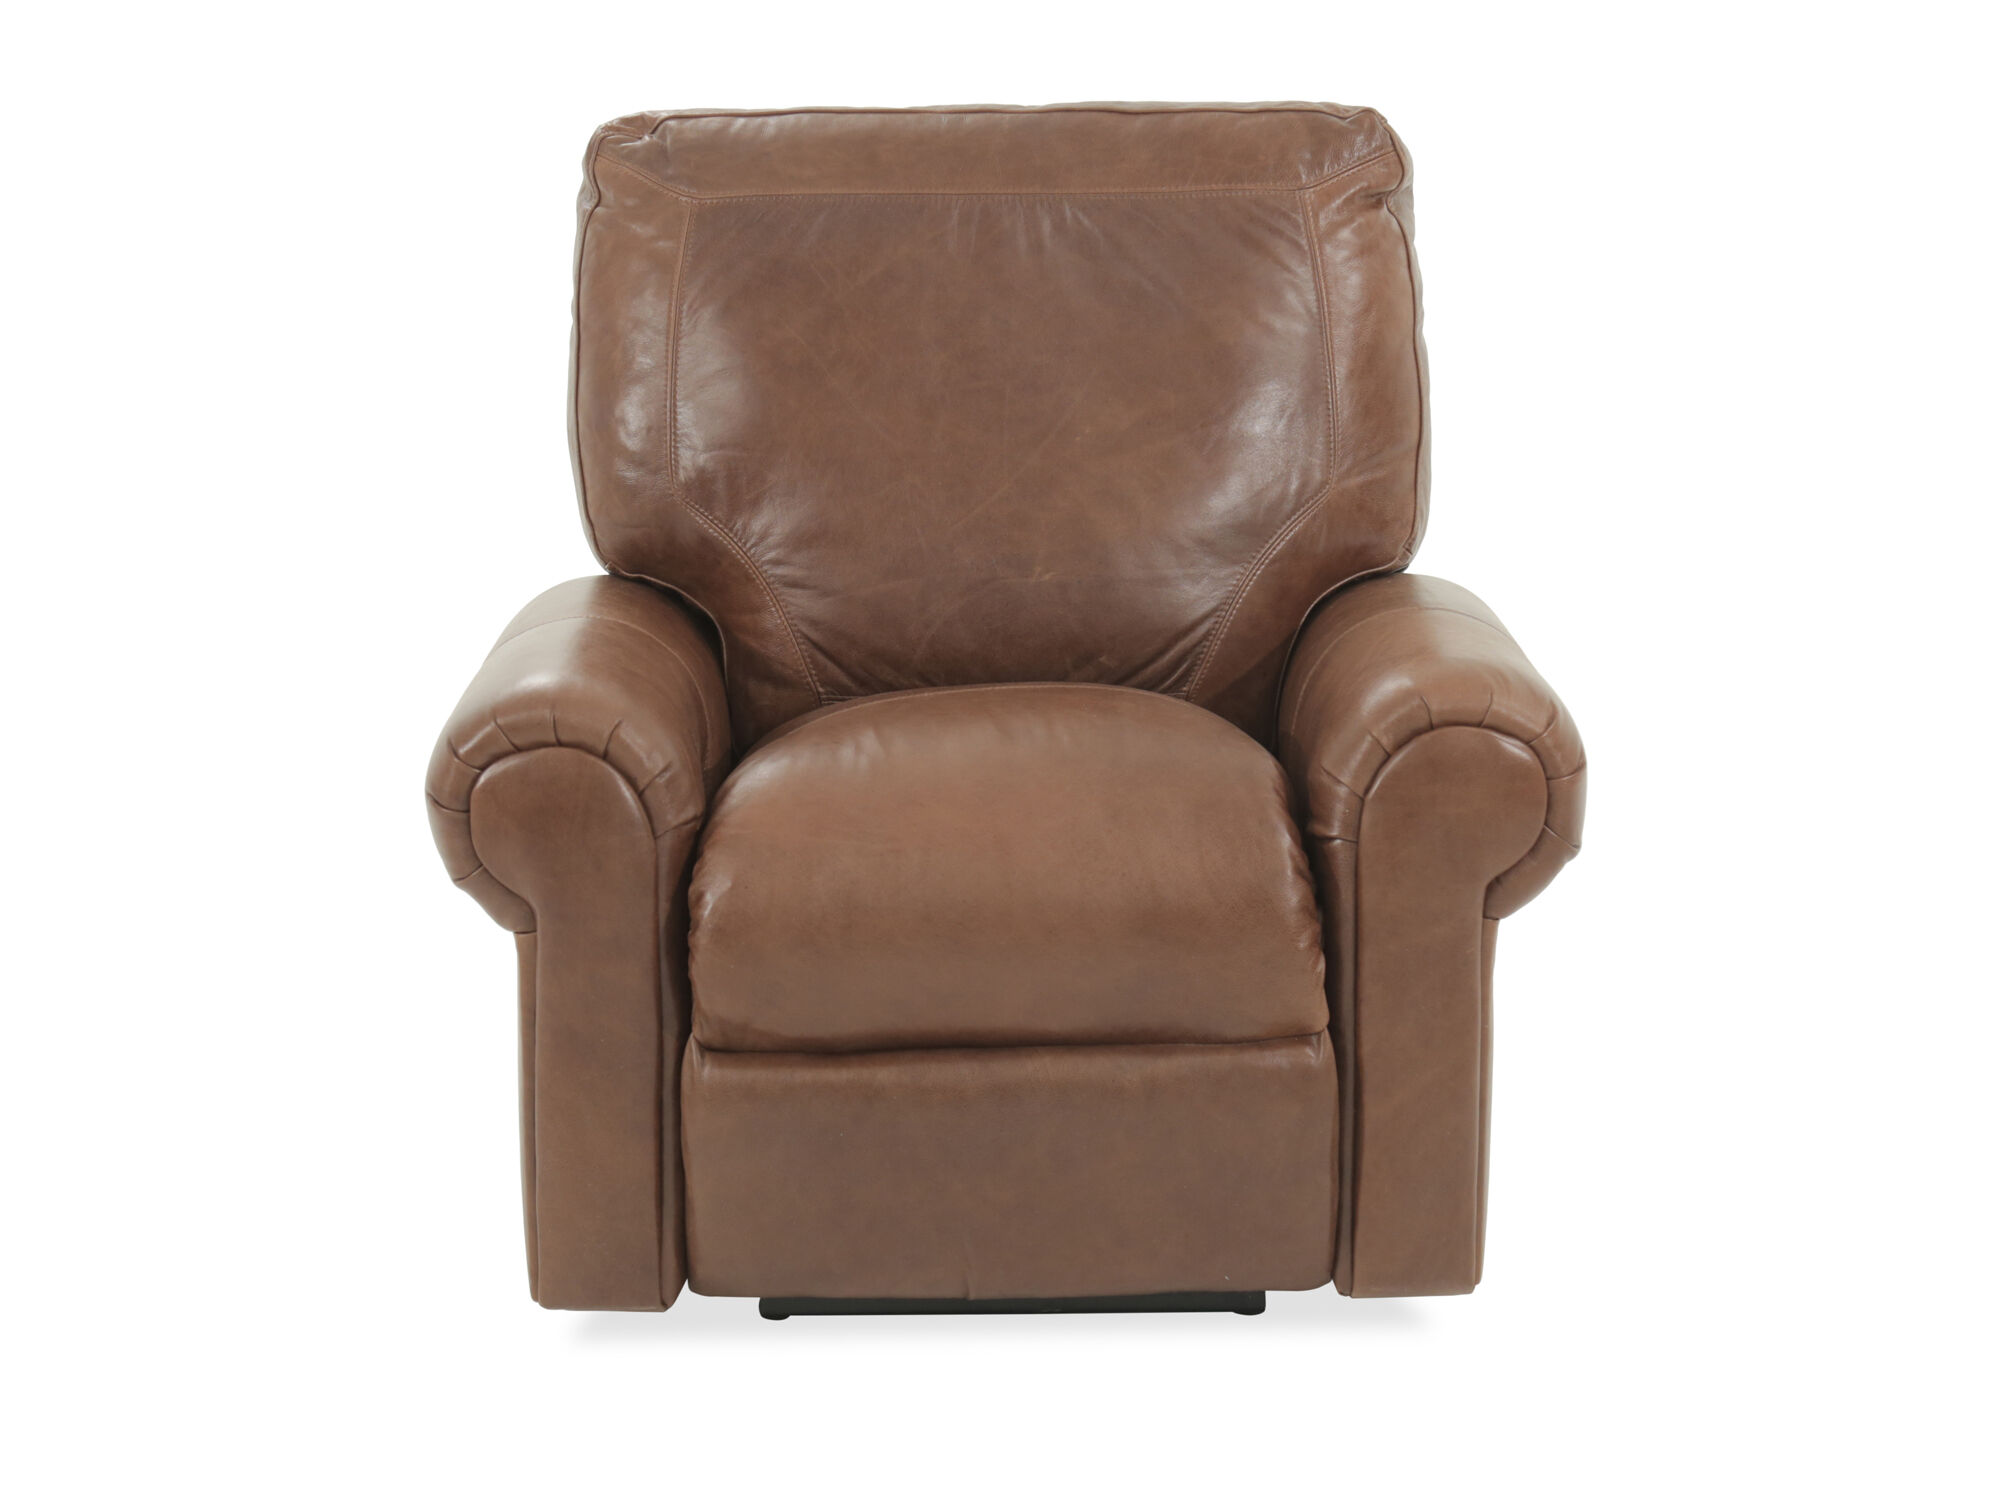 USA Premium Leather Brompton Natural Power Recliner ...  sc 1 st  Mathis Brothers & USA Furniture - Leather Furniture | Mathis Brothers islam-shia.org